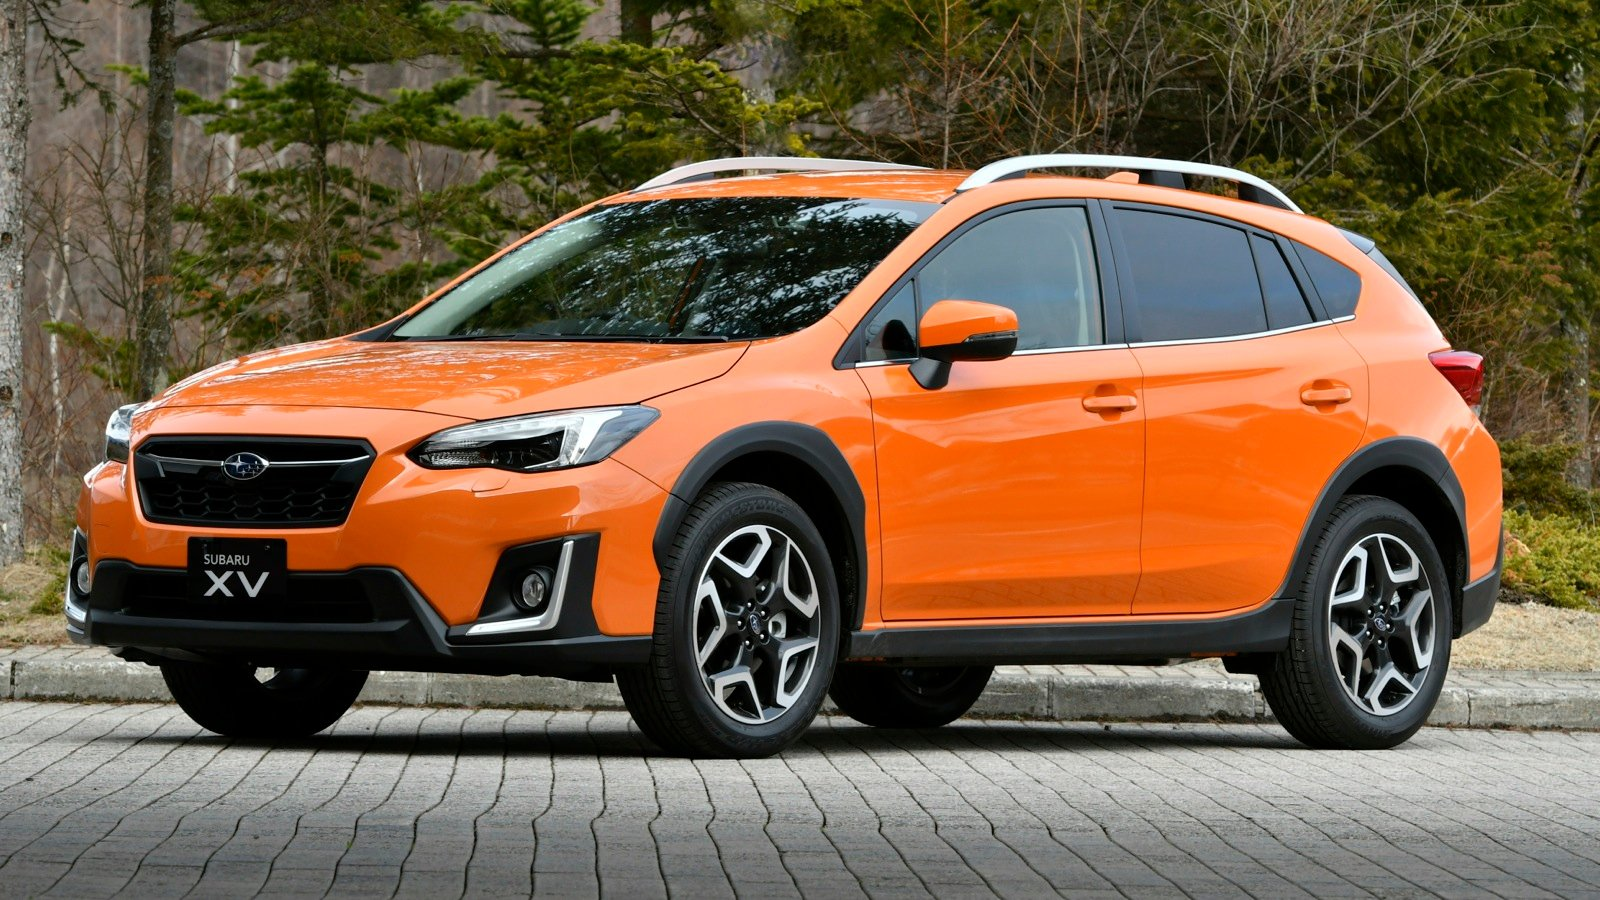 2017 Subaru Xv Detailed Photos